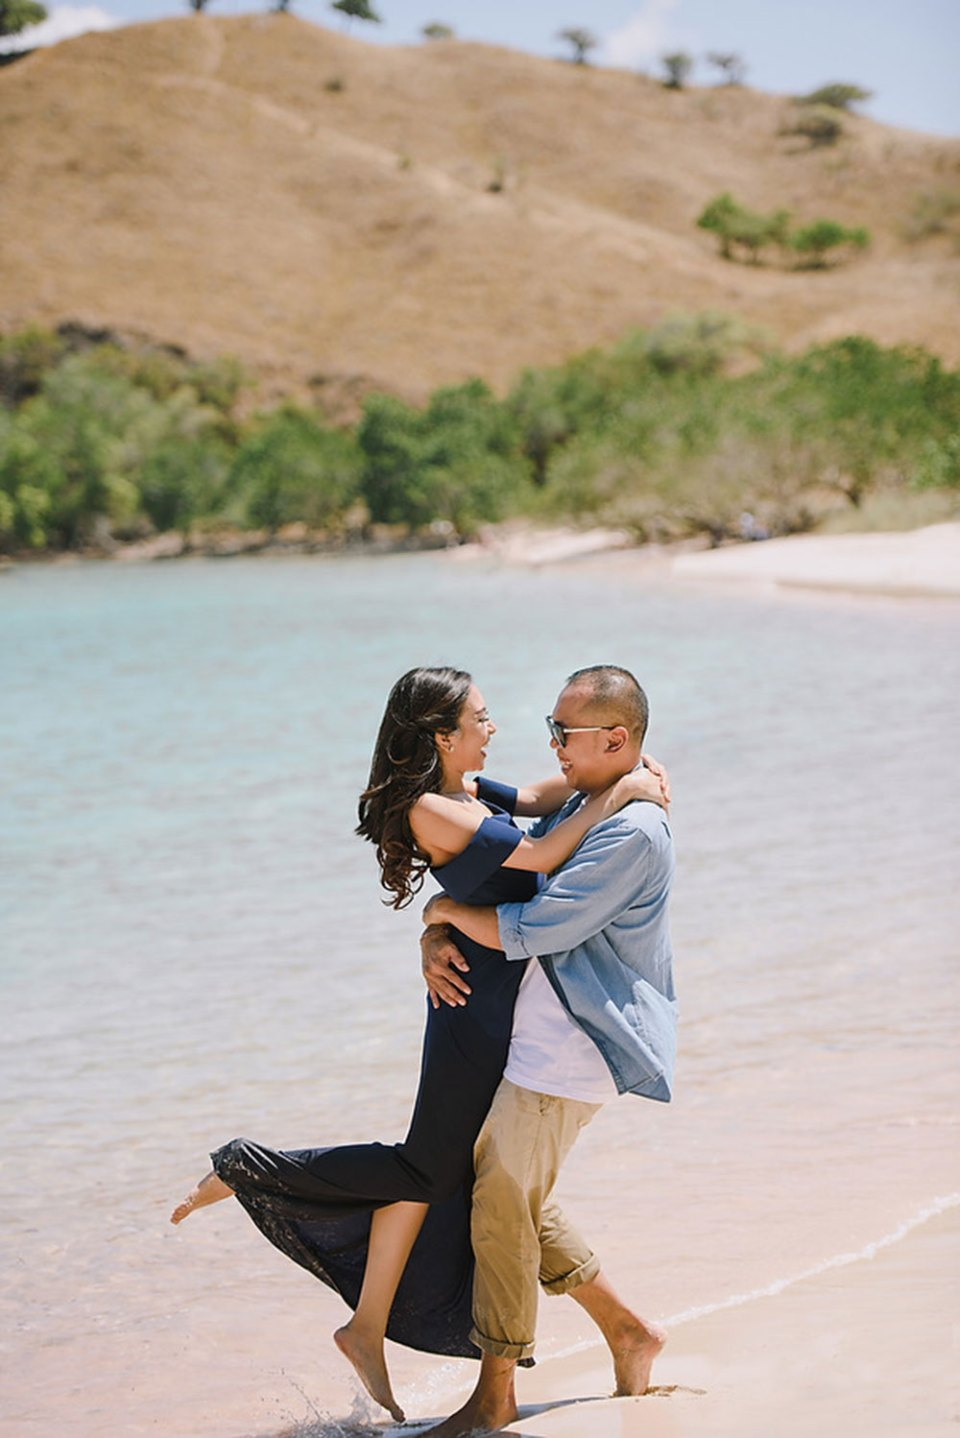 Photo by Gusde Photography. p://www.theweddingnotebook.com